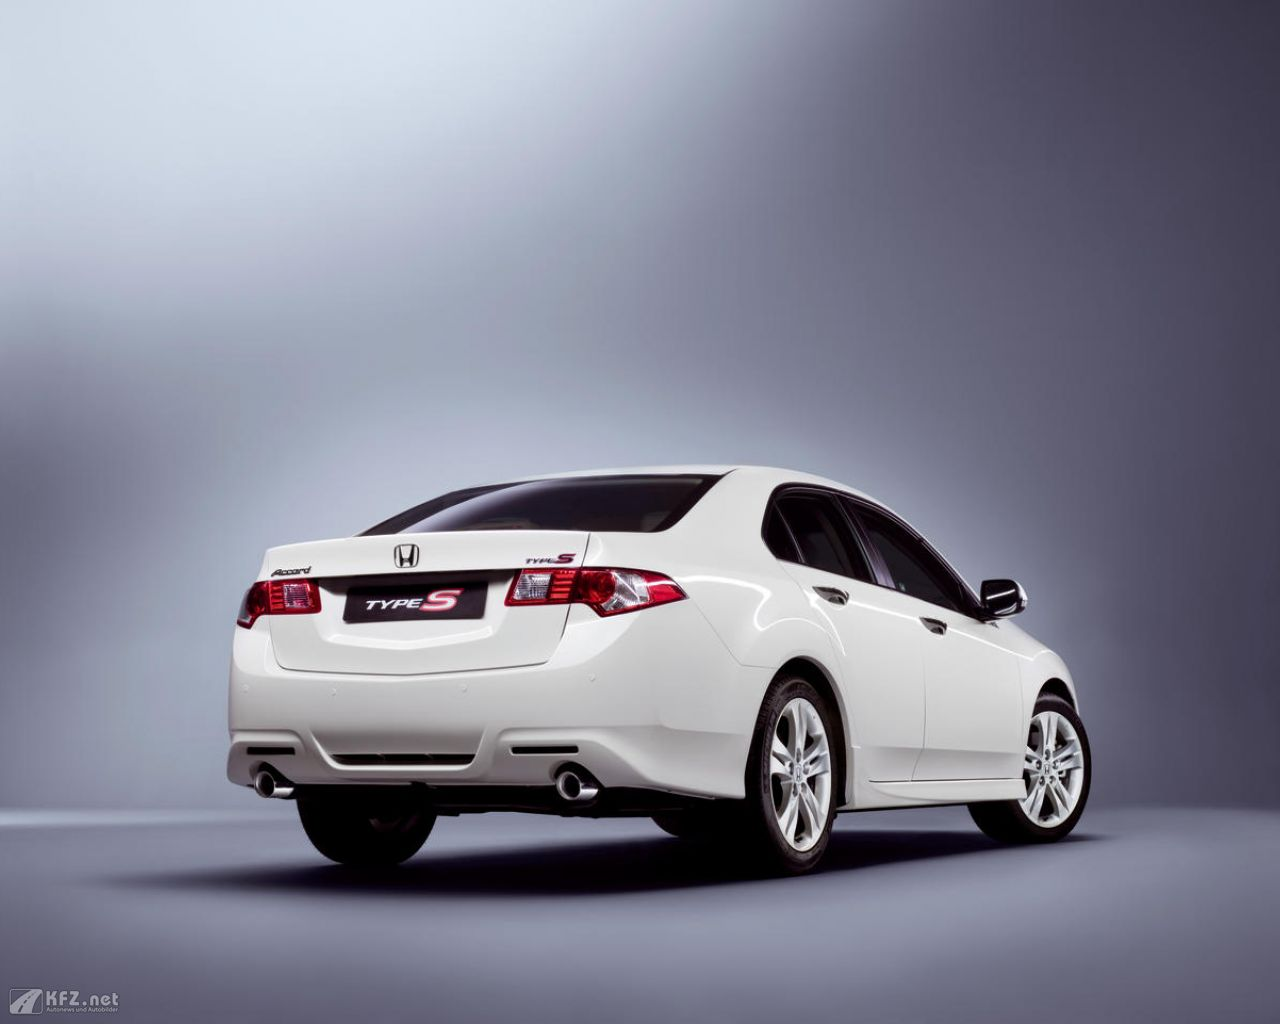 honda-accord-1280x1024-171